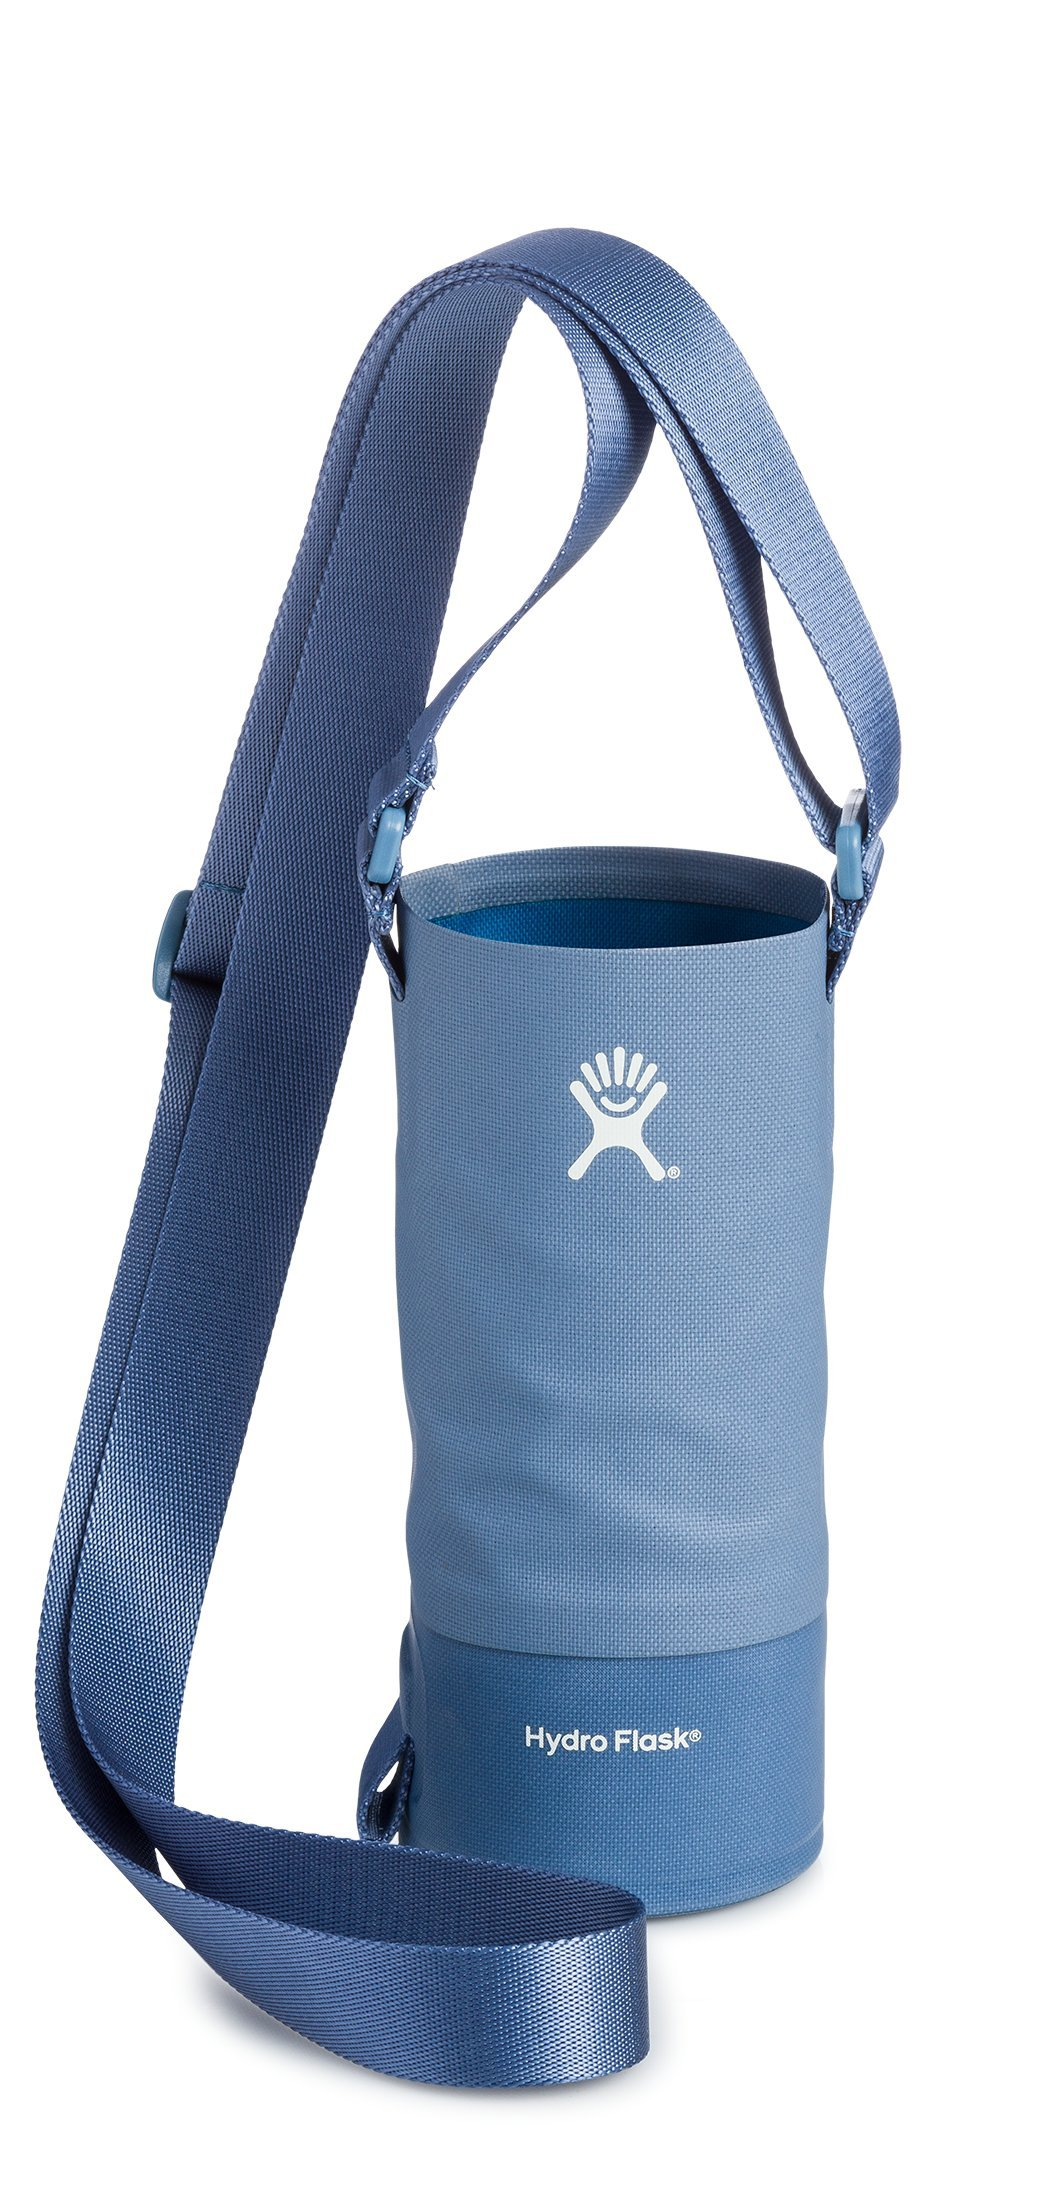 Hydro Flask Small Soft Sided Nylon Tag Along Water Bottle Sling with Pockets, Storm (Fits 12 oz, 18 oz, 21 oz, and 24 oz Bottles)